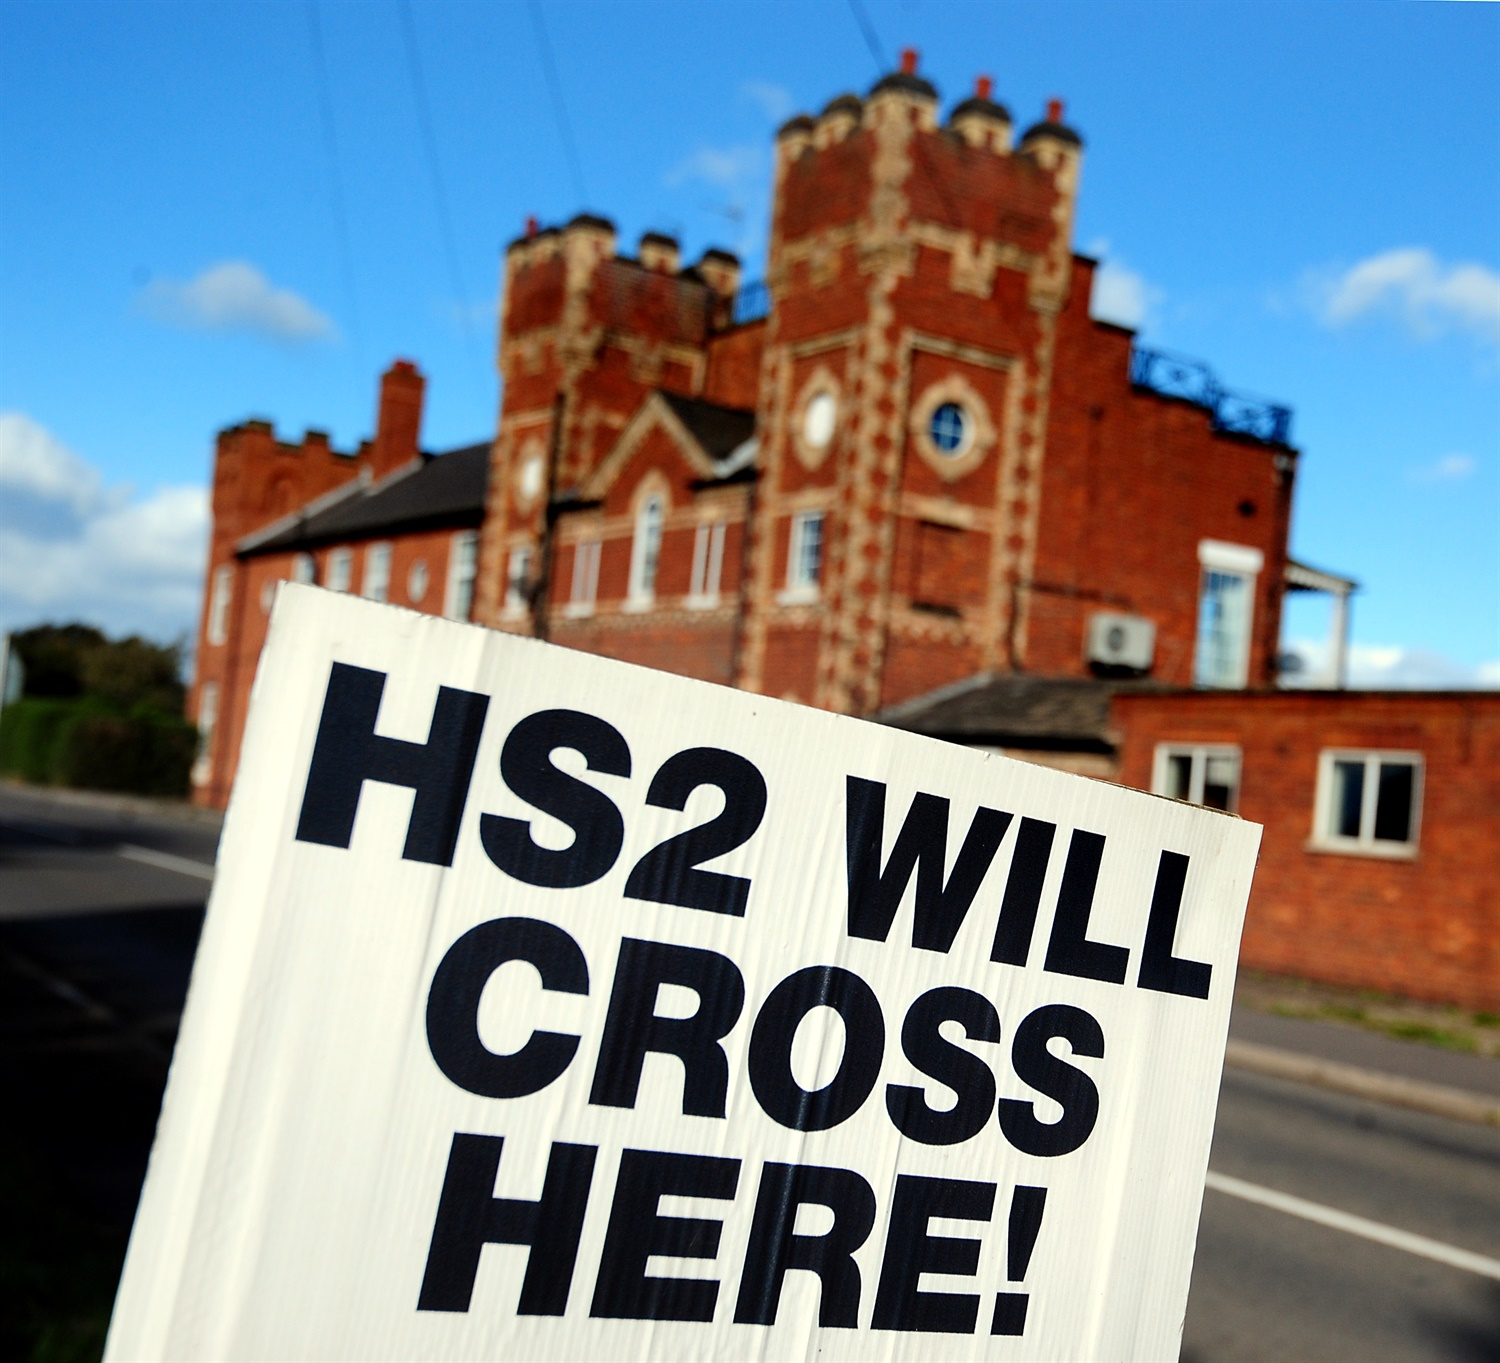 Over 14,000 jobs 'would be lost if HS2 is cancelled'